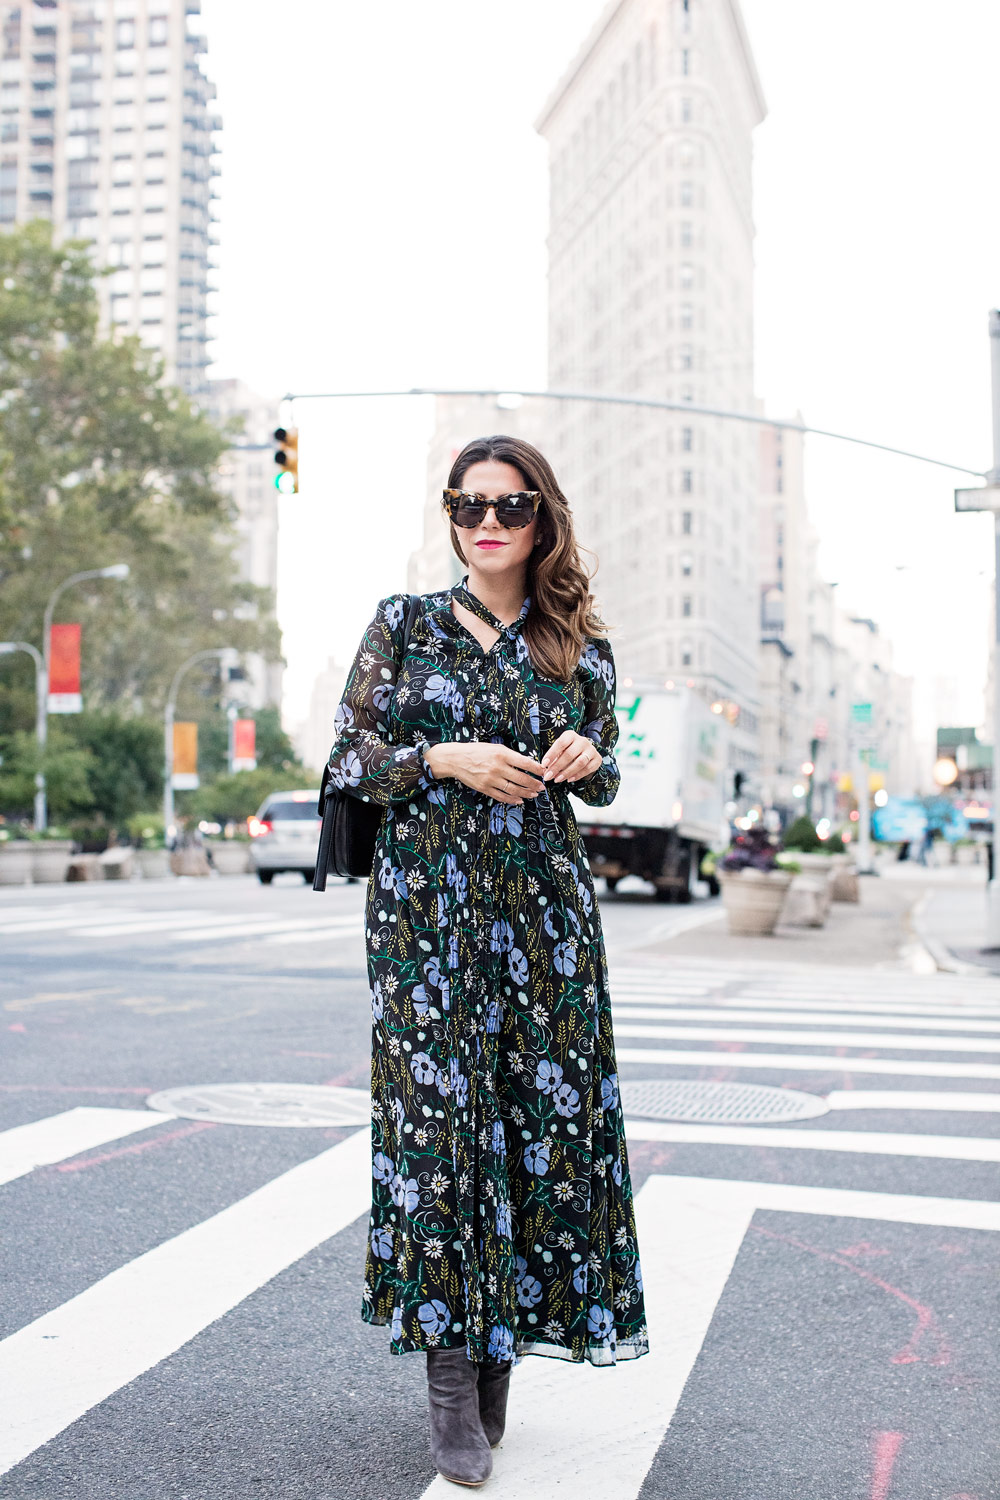 floral-dress-banana-republic-worth-new-york-fall-style-corporate-catwalk-joie-suede-boots-new-york-city-fashion-blogger-1